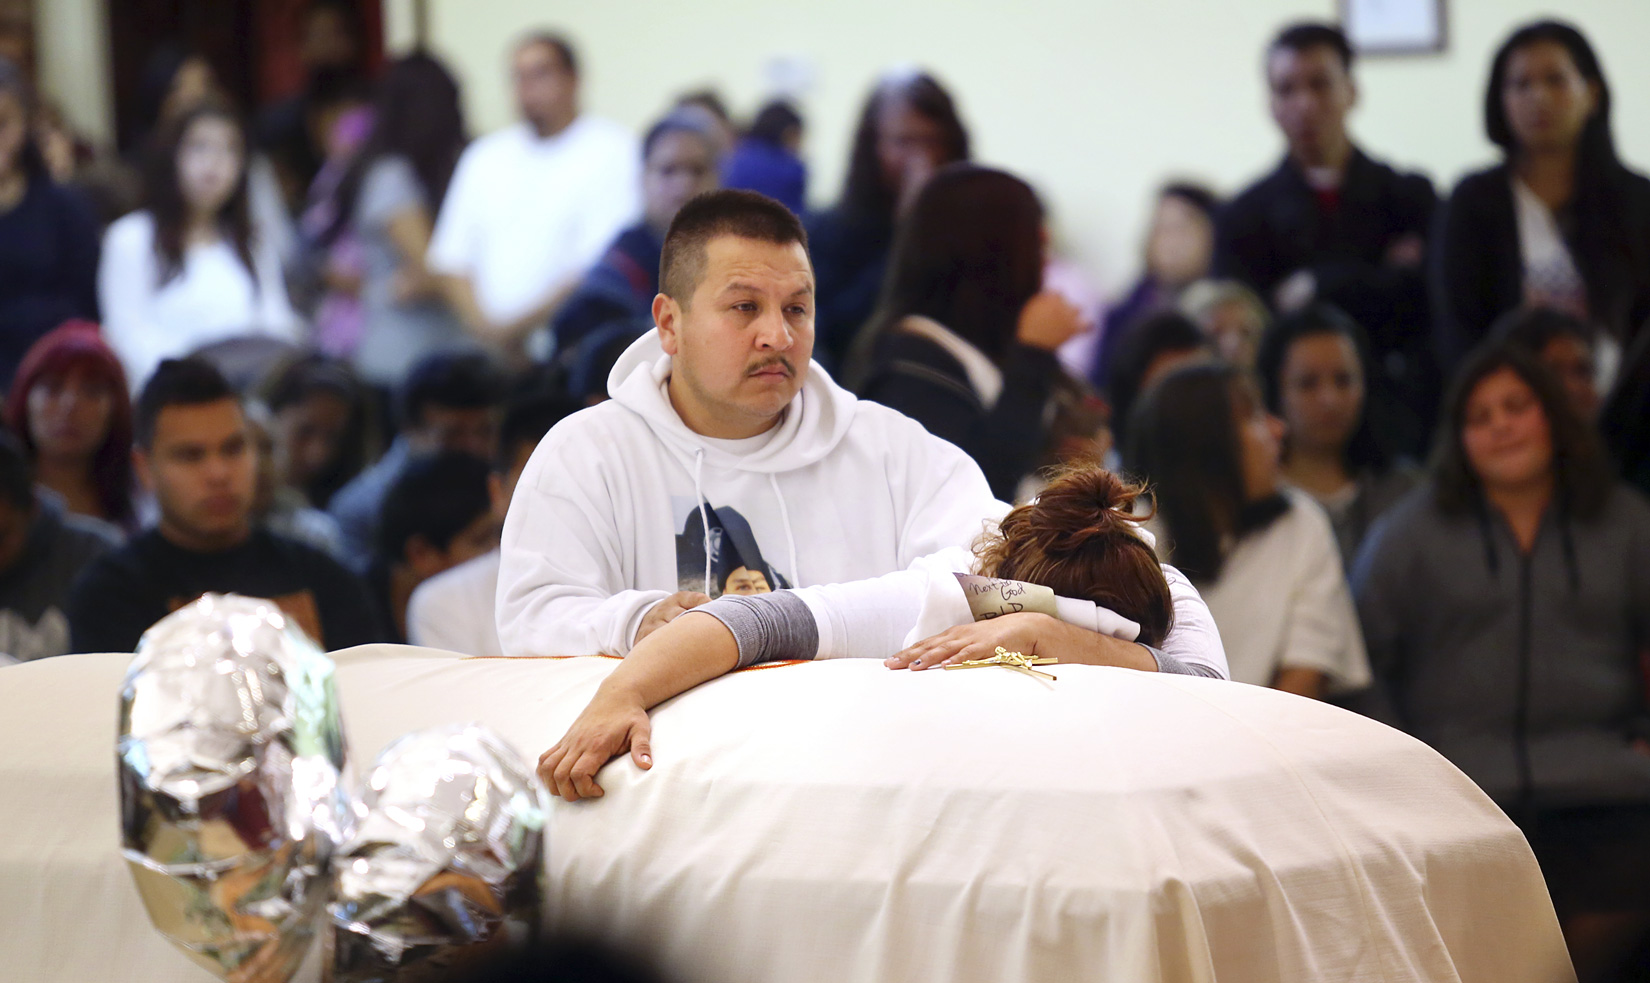 Sujey Lopez clutches the coffin holding her 13-year-old son as he husband Rodrigo Lopez consoles her during Andy Lopez's funeral ceremony funeral ceremony at Resurrection Parish in Santa Rosa on Tuesday, October 29, 2013. (Conner Jay/The Press Democrat)